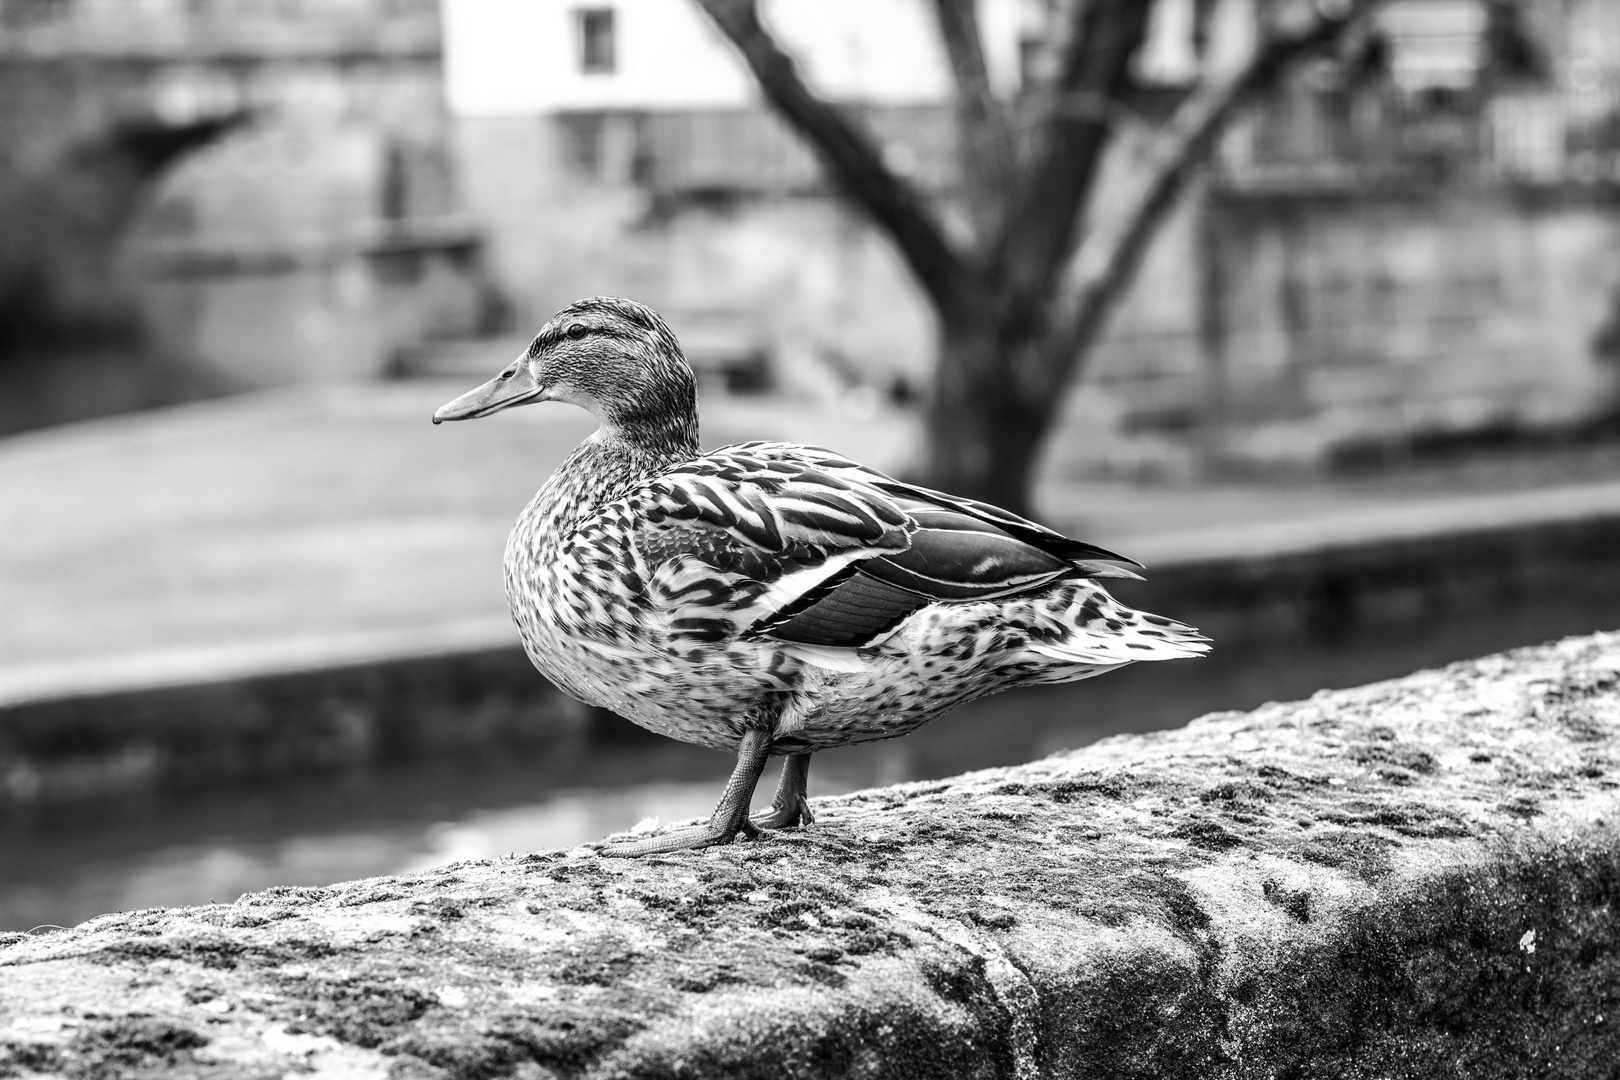 Duck in the City